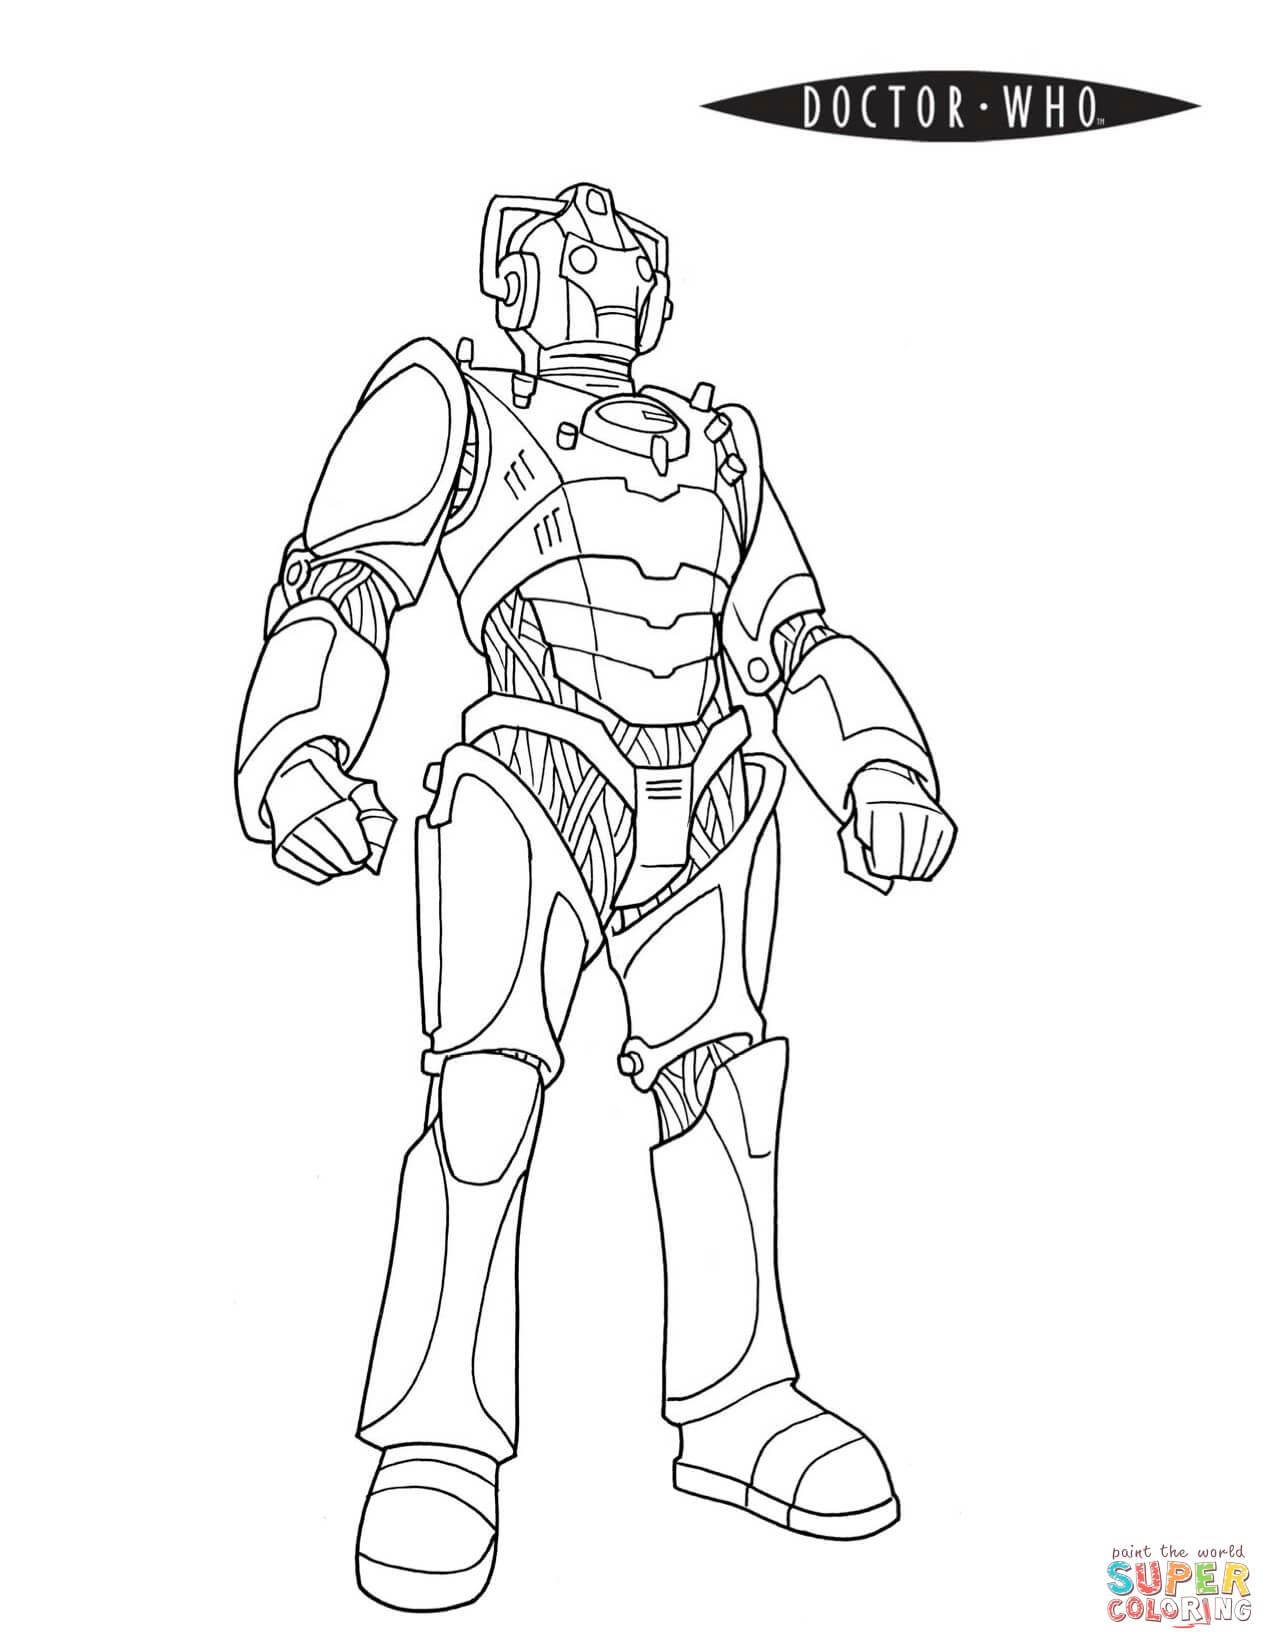 Doctor Who Coloring Pages Free Coloring Pages